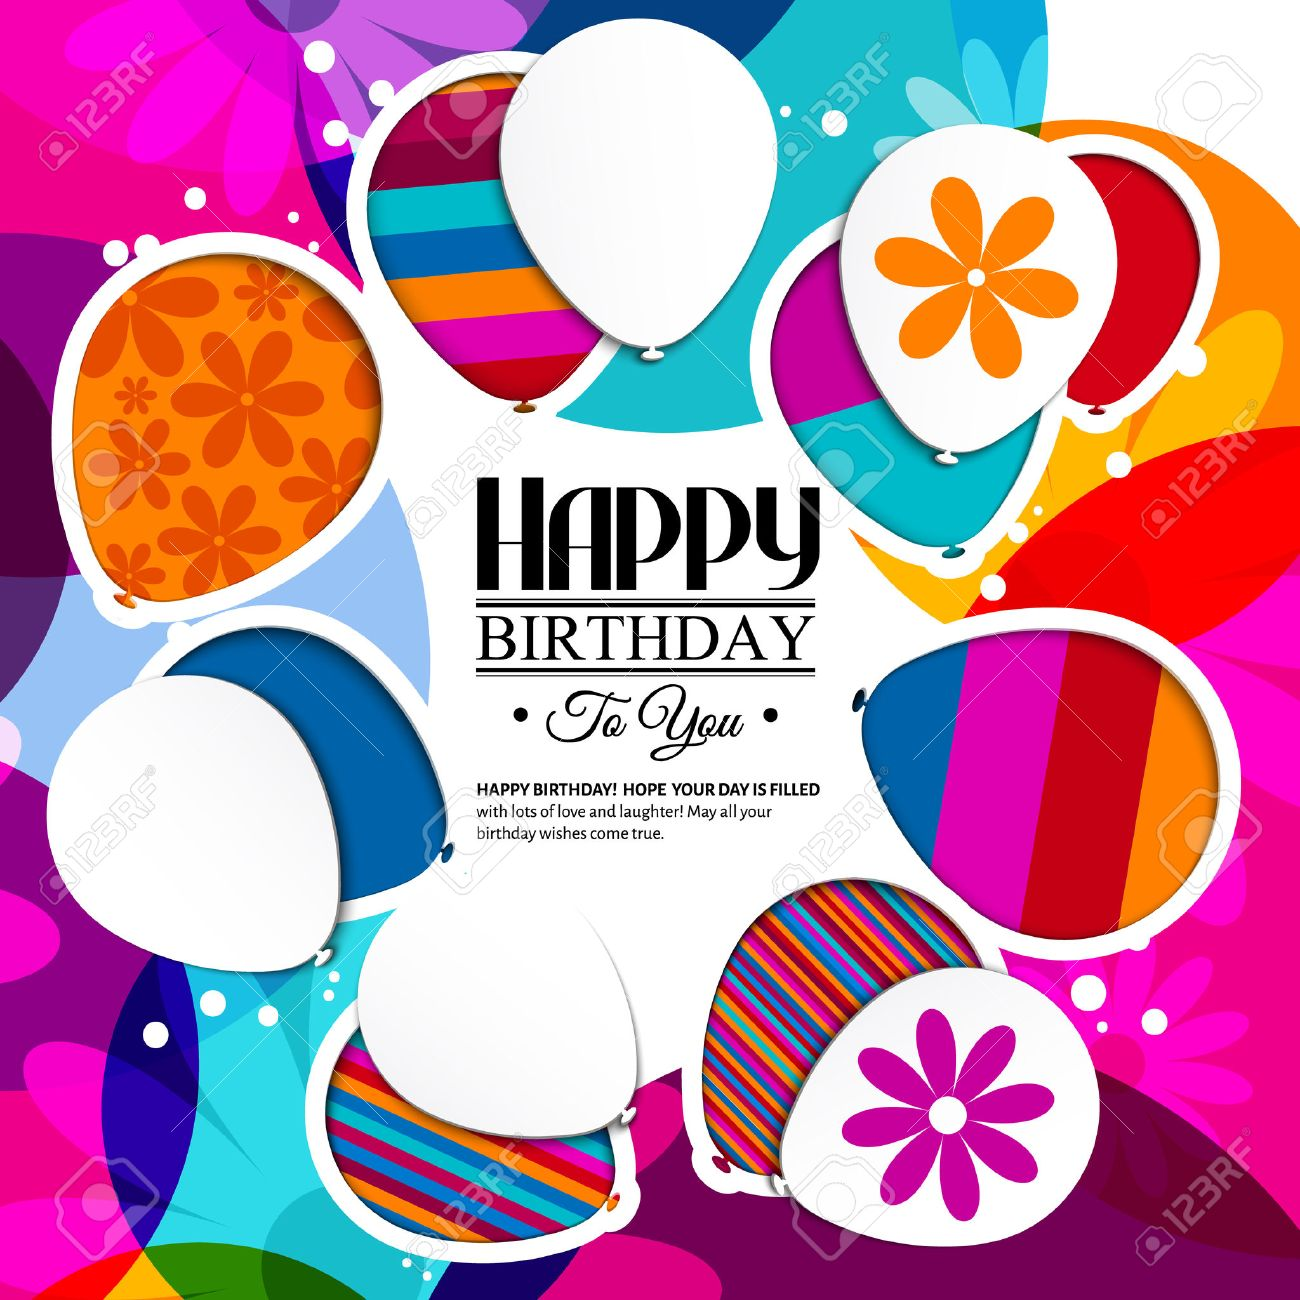 Vector Birthday Card With Paper Balloons In The Style Of Cutouts – Vector Birthday Card